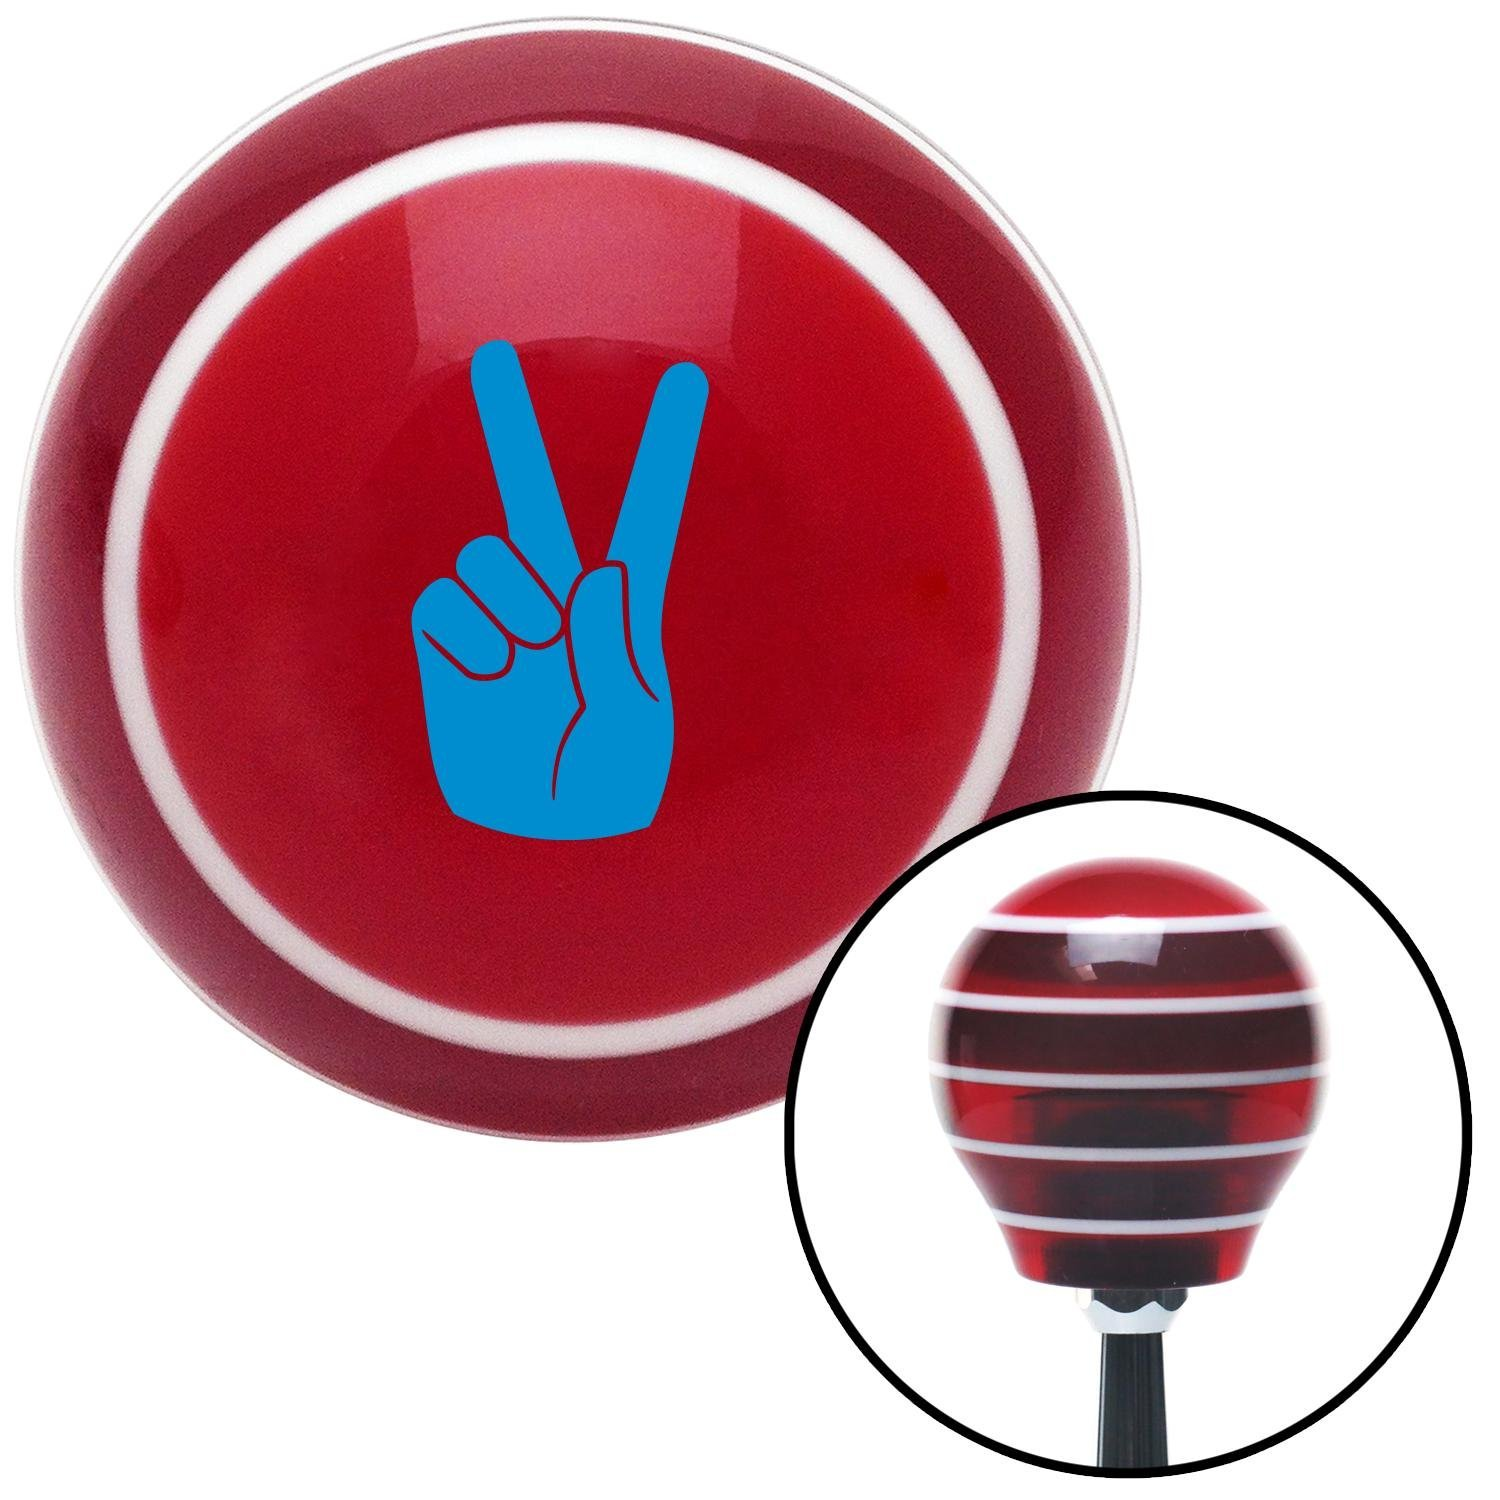 American Shifter 113231 Red Stripe Shift Knob with M16 x 1.5 Insert Blue Hand Making Peace Sign